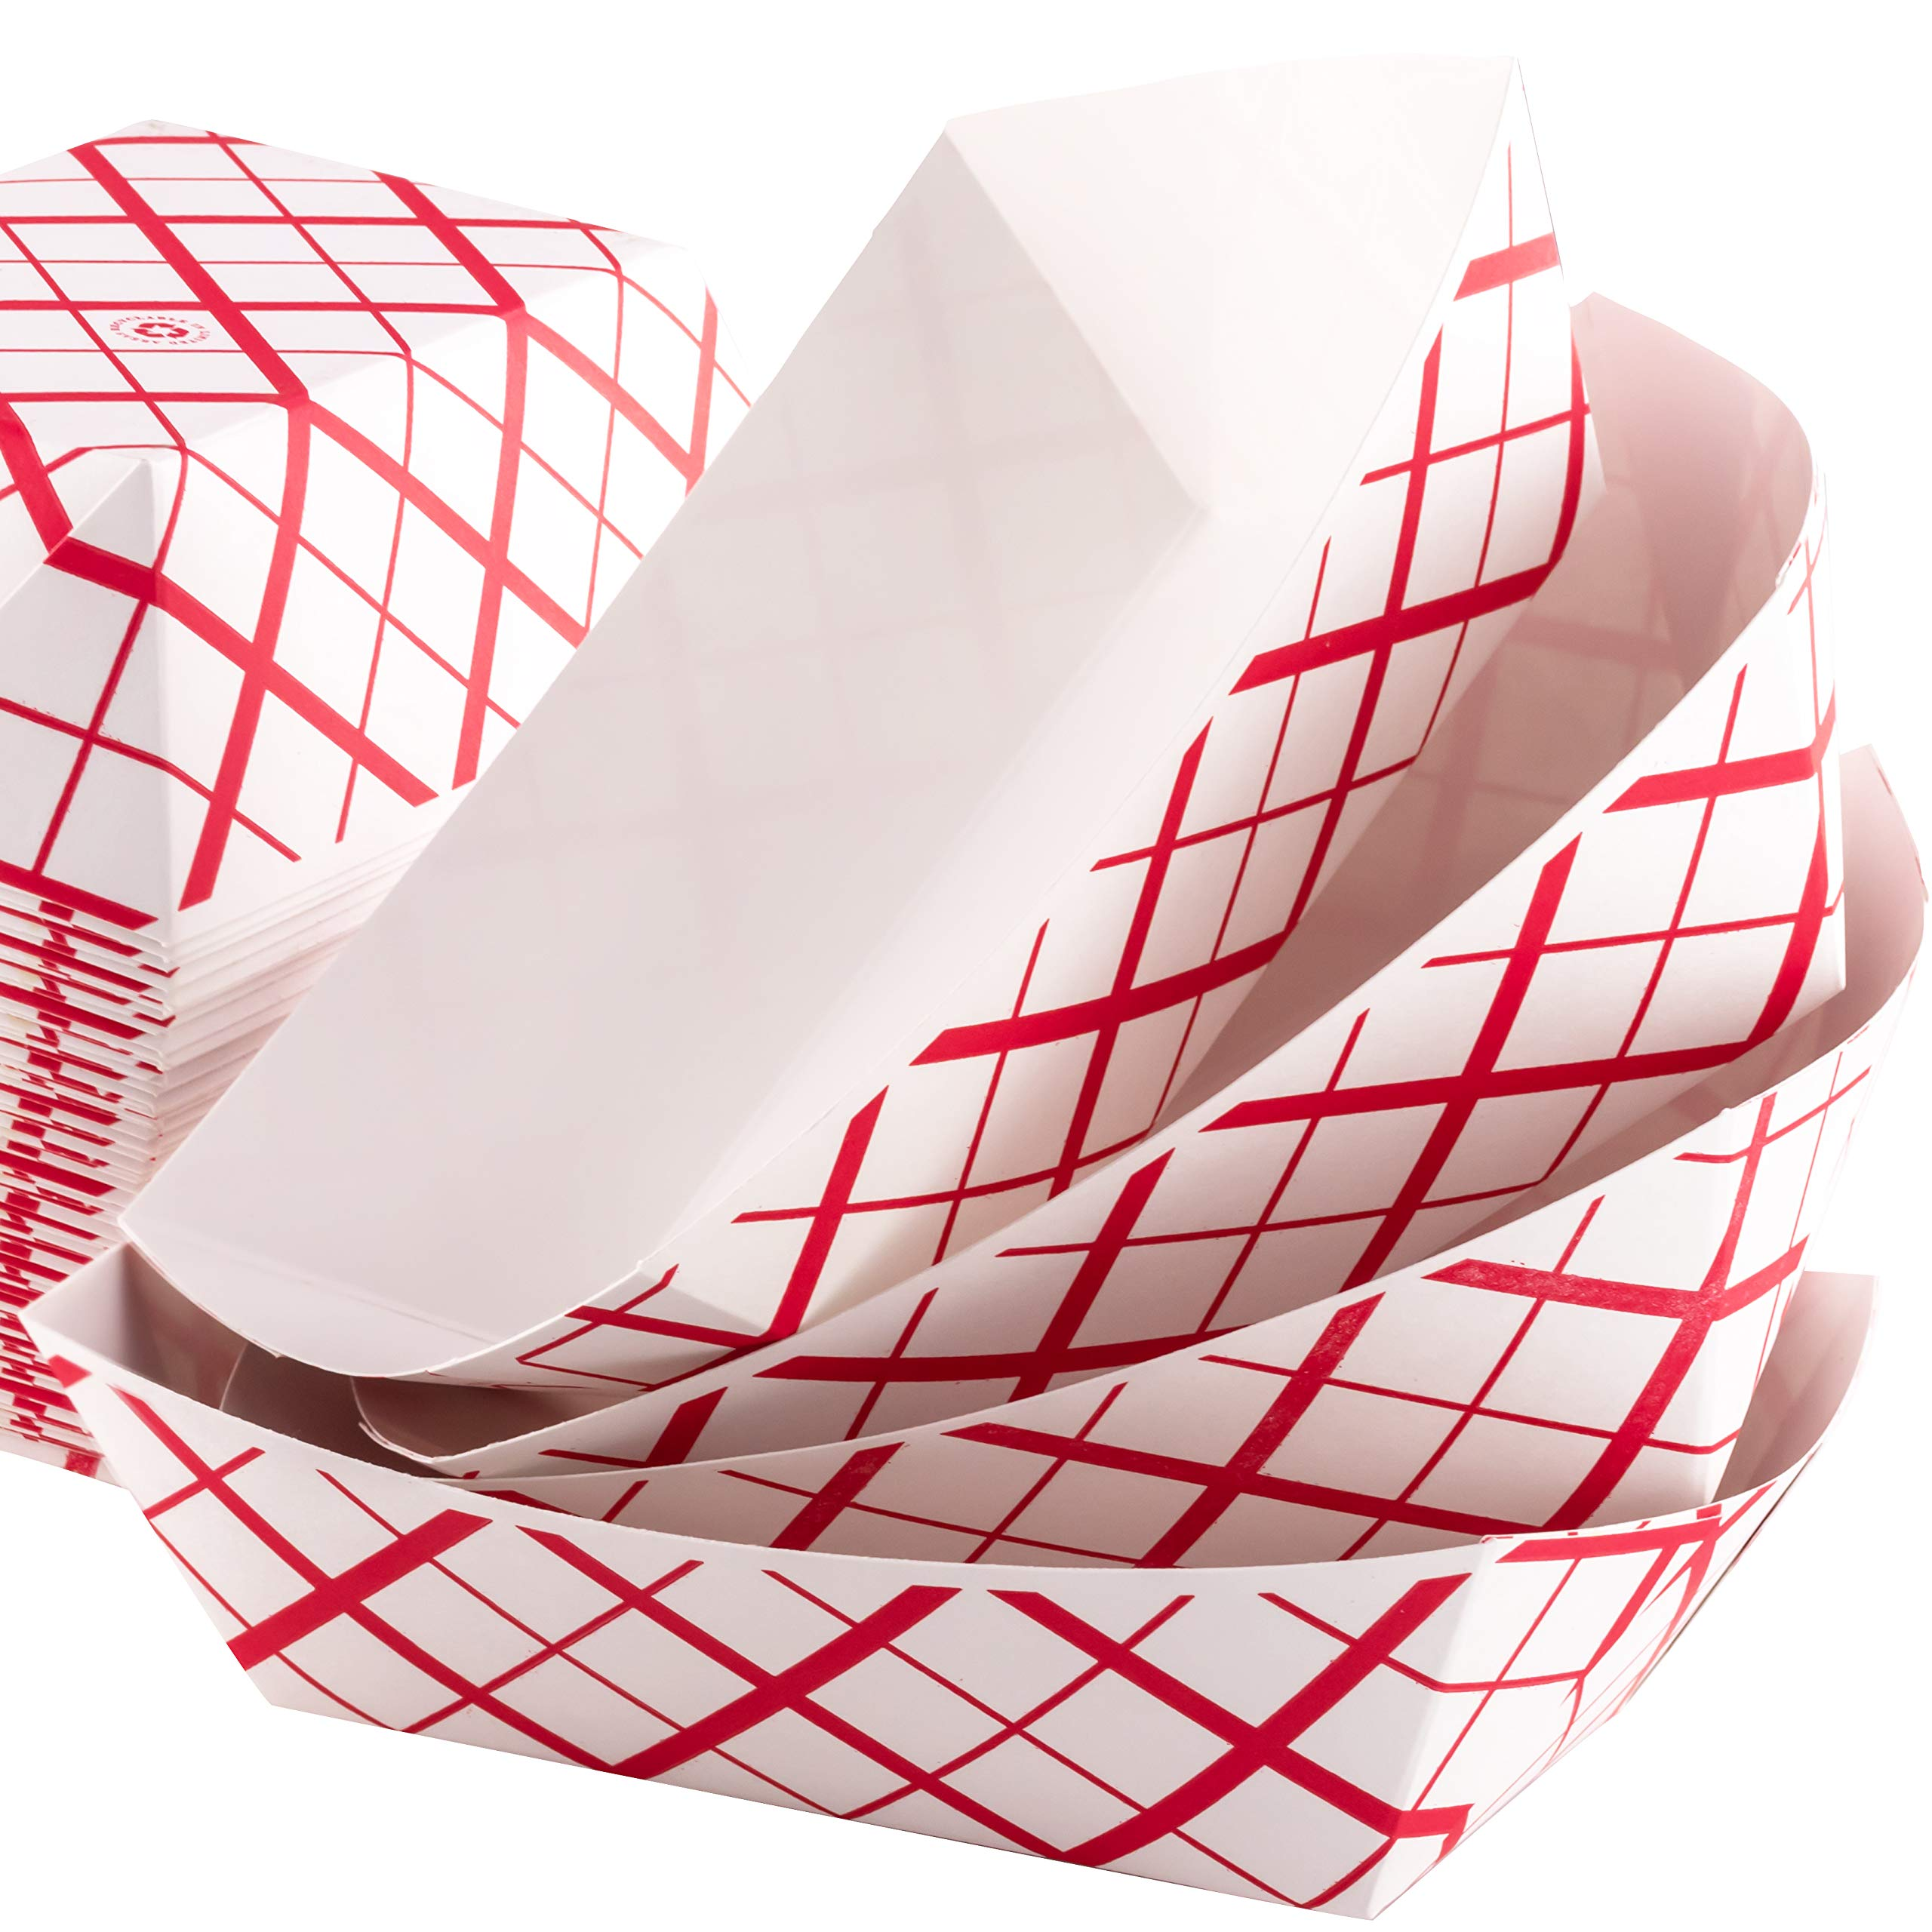 Grease-Proof Sturdy Food Trays 1/2 lb Capacity 200 Pack by Eucatus. Serve Hot or Cold Snacks in These Classic Carnival Style Checkered Paper Baskets. Perfect for Concession Stand or Circus Party Fare! by Eucatus